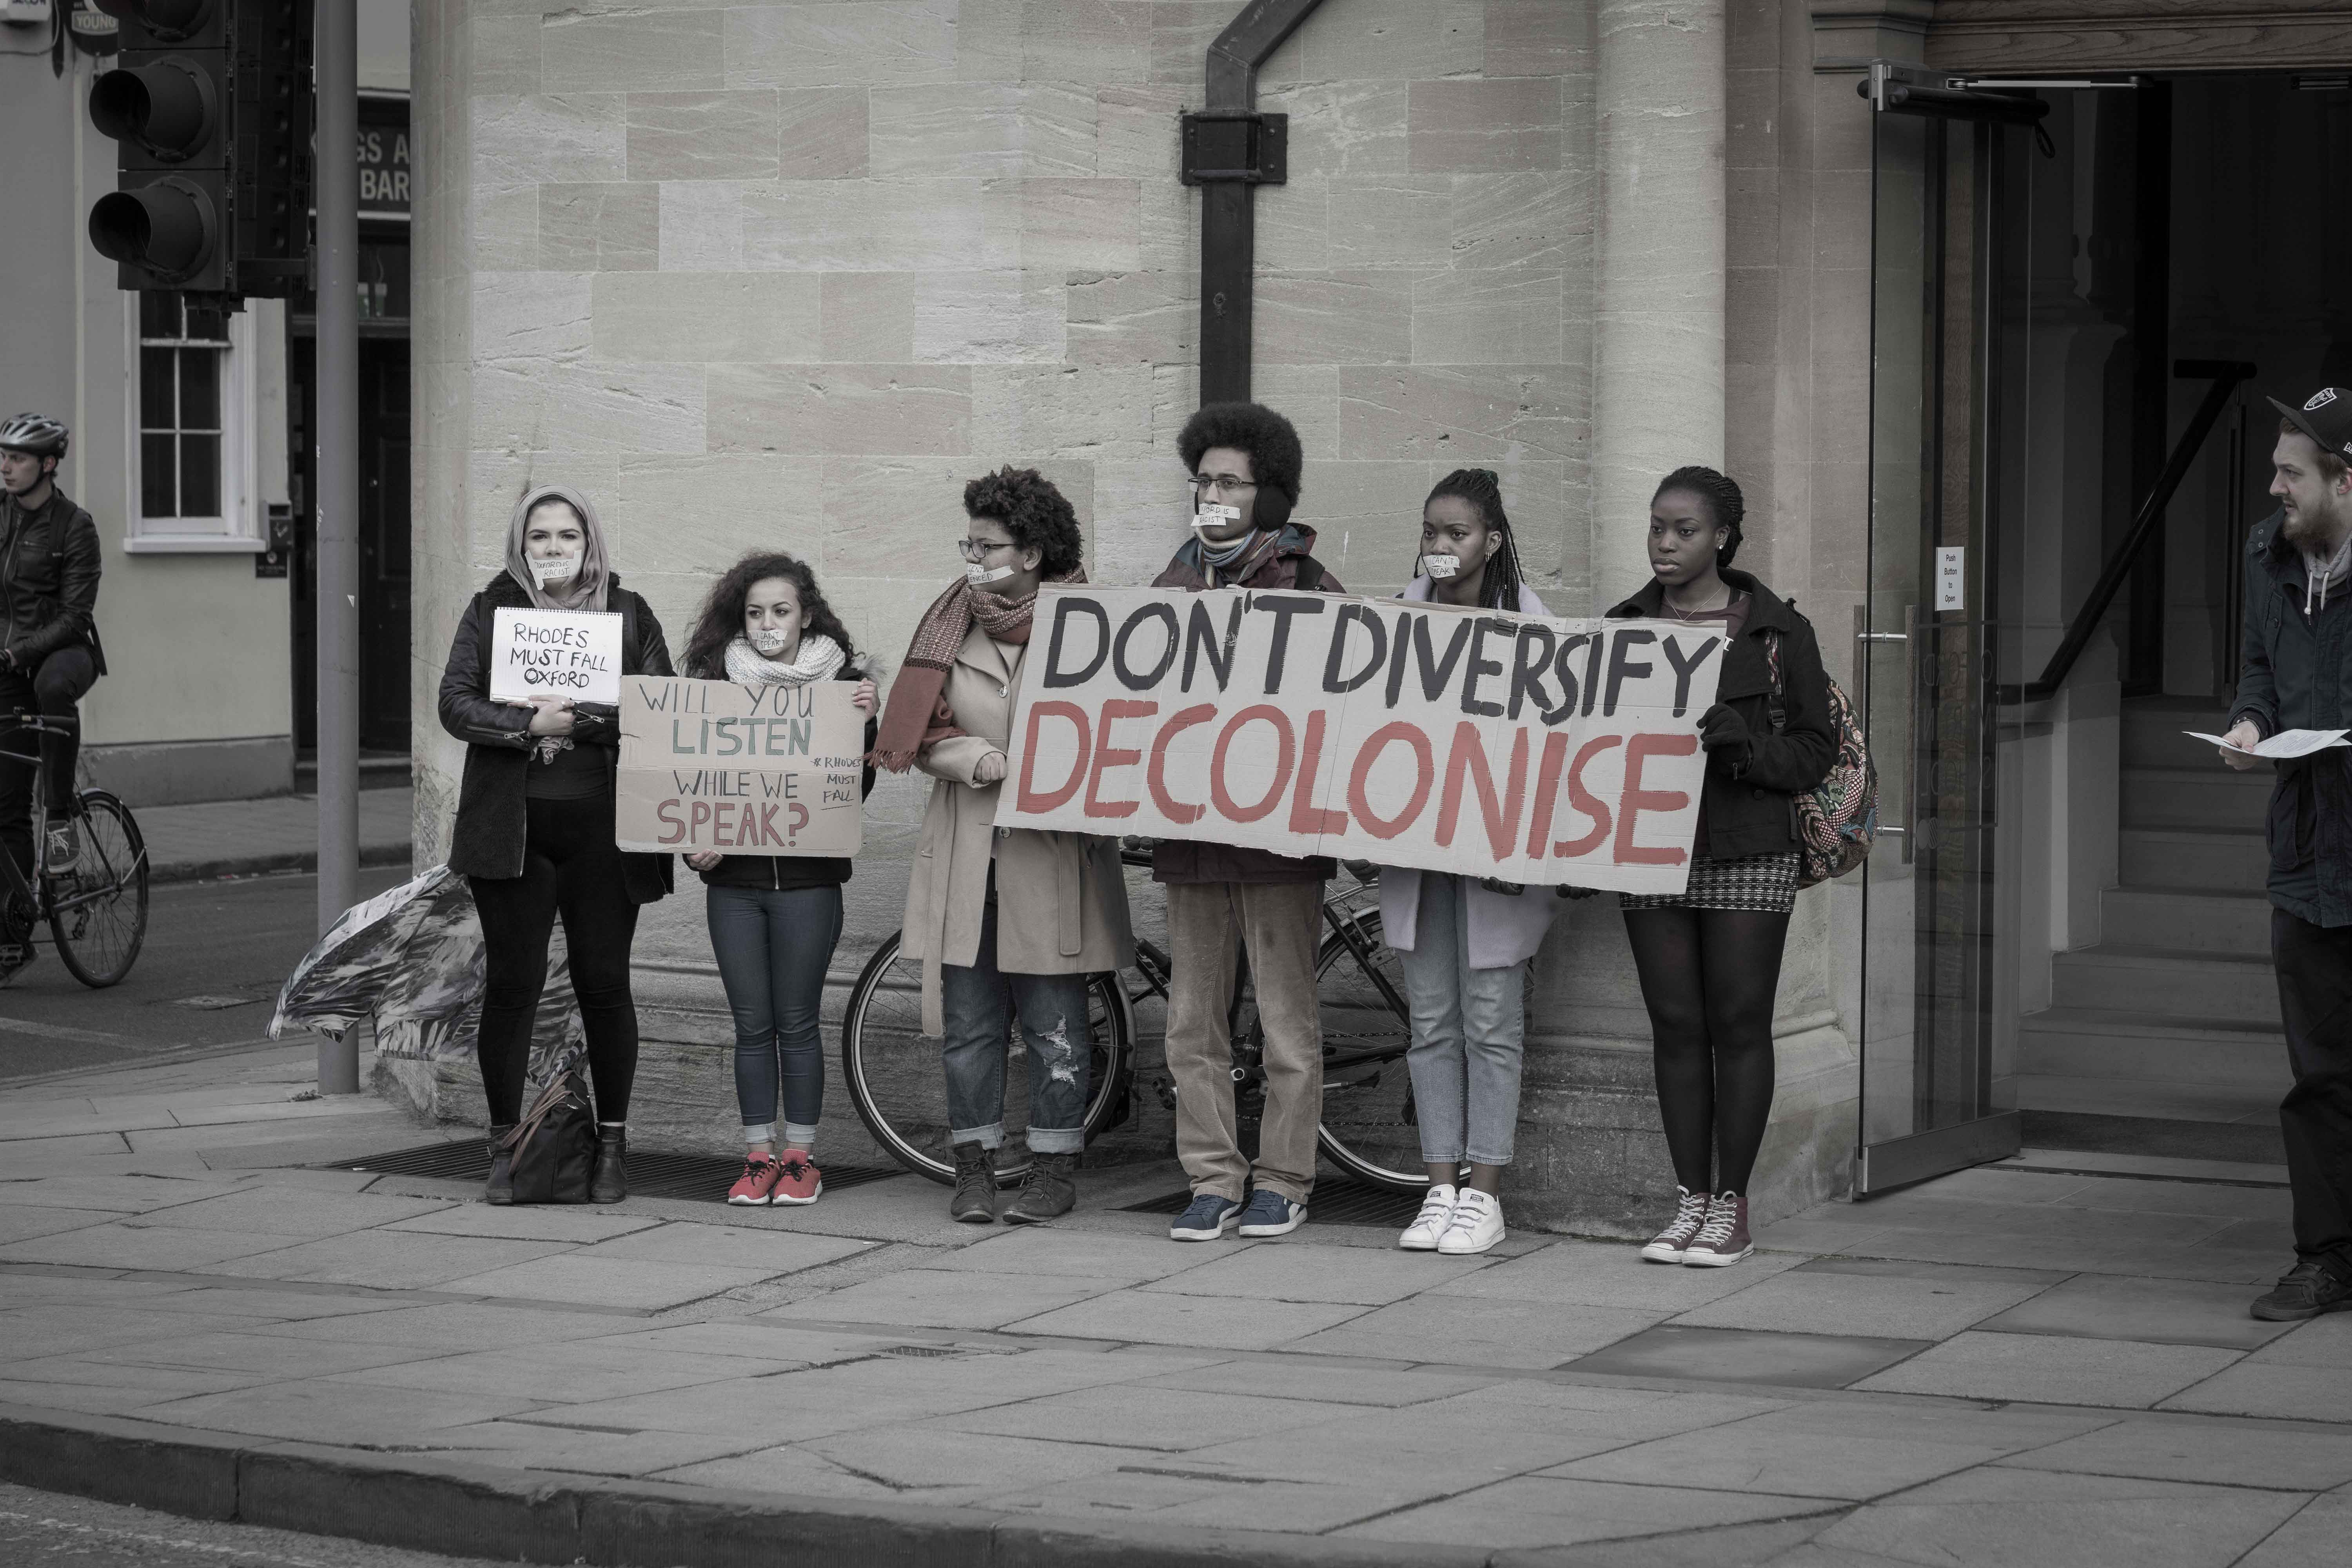 Members of Rhodes Must Fall in Oxford protest a 'diversity' event at 'The Old Indian Institute'. Image: George Edwards